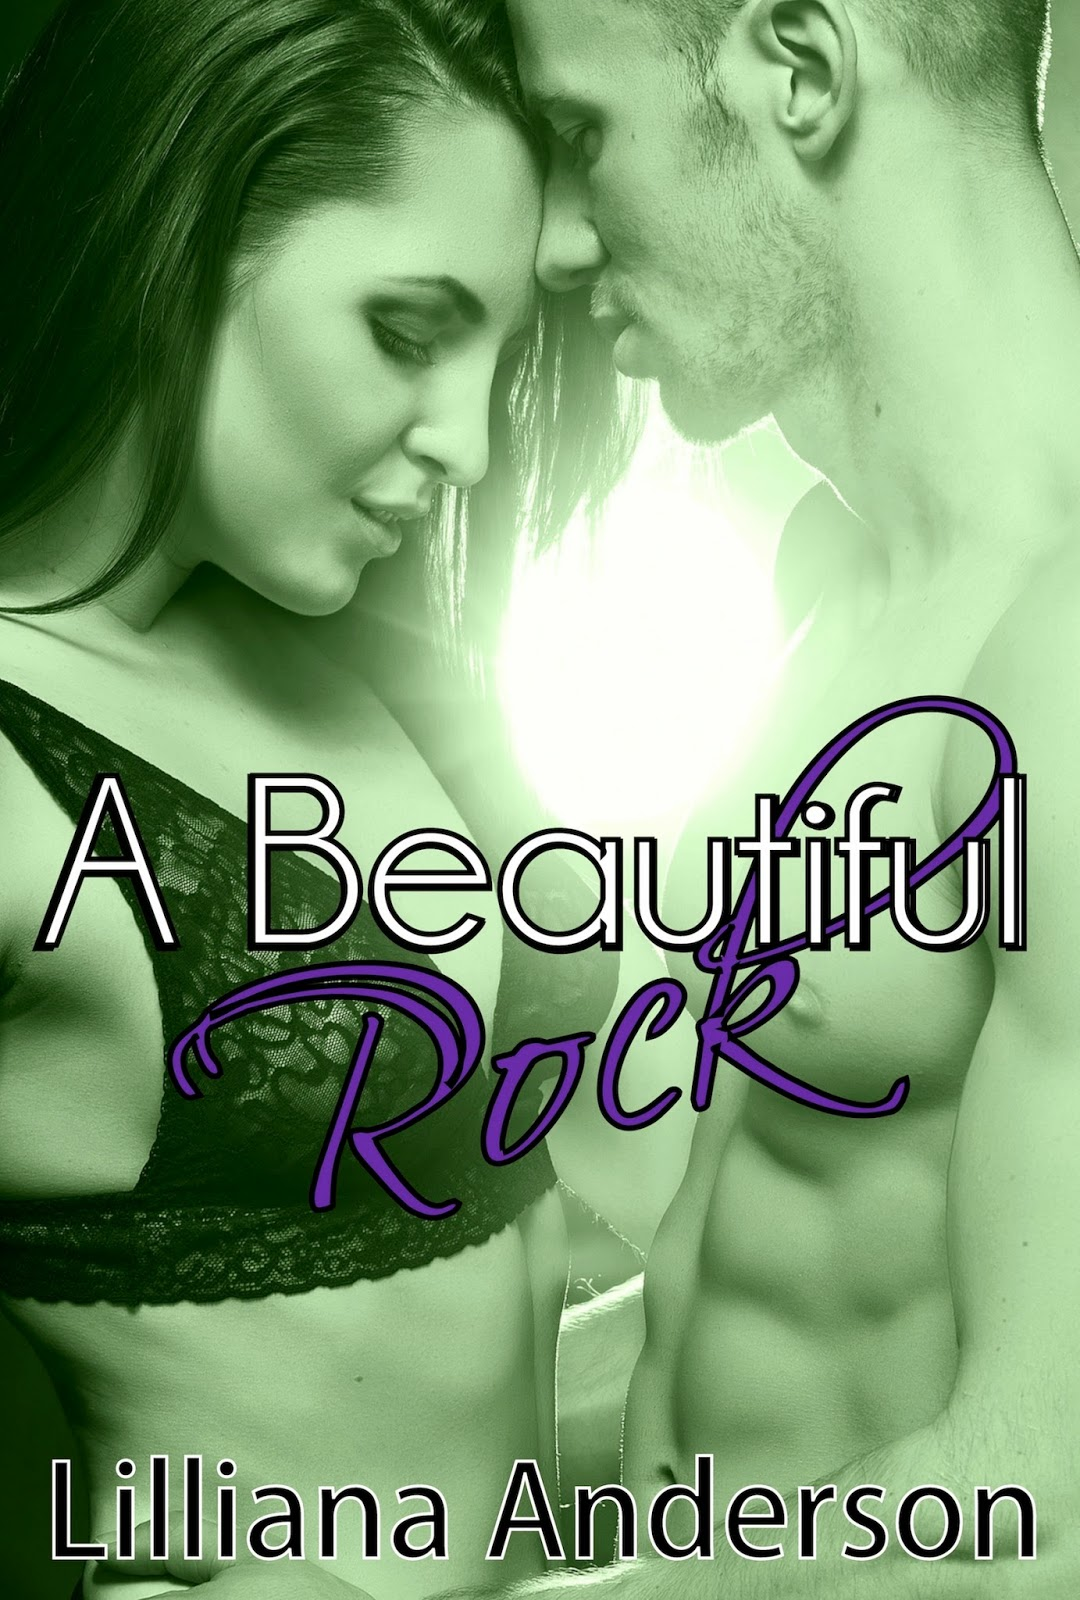 A Beautiful Rock by Lilliana Anderson (Beautiful #4) Publication date:  April 3rd 2014. Genres: New Adult, Romance